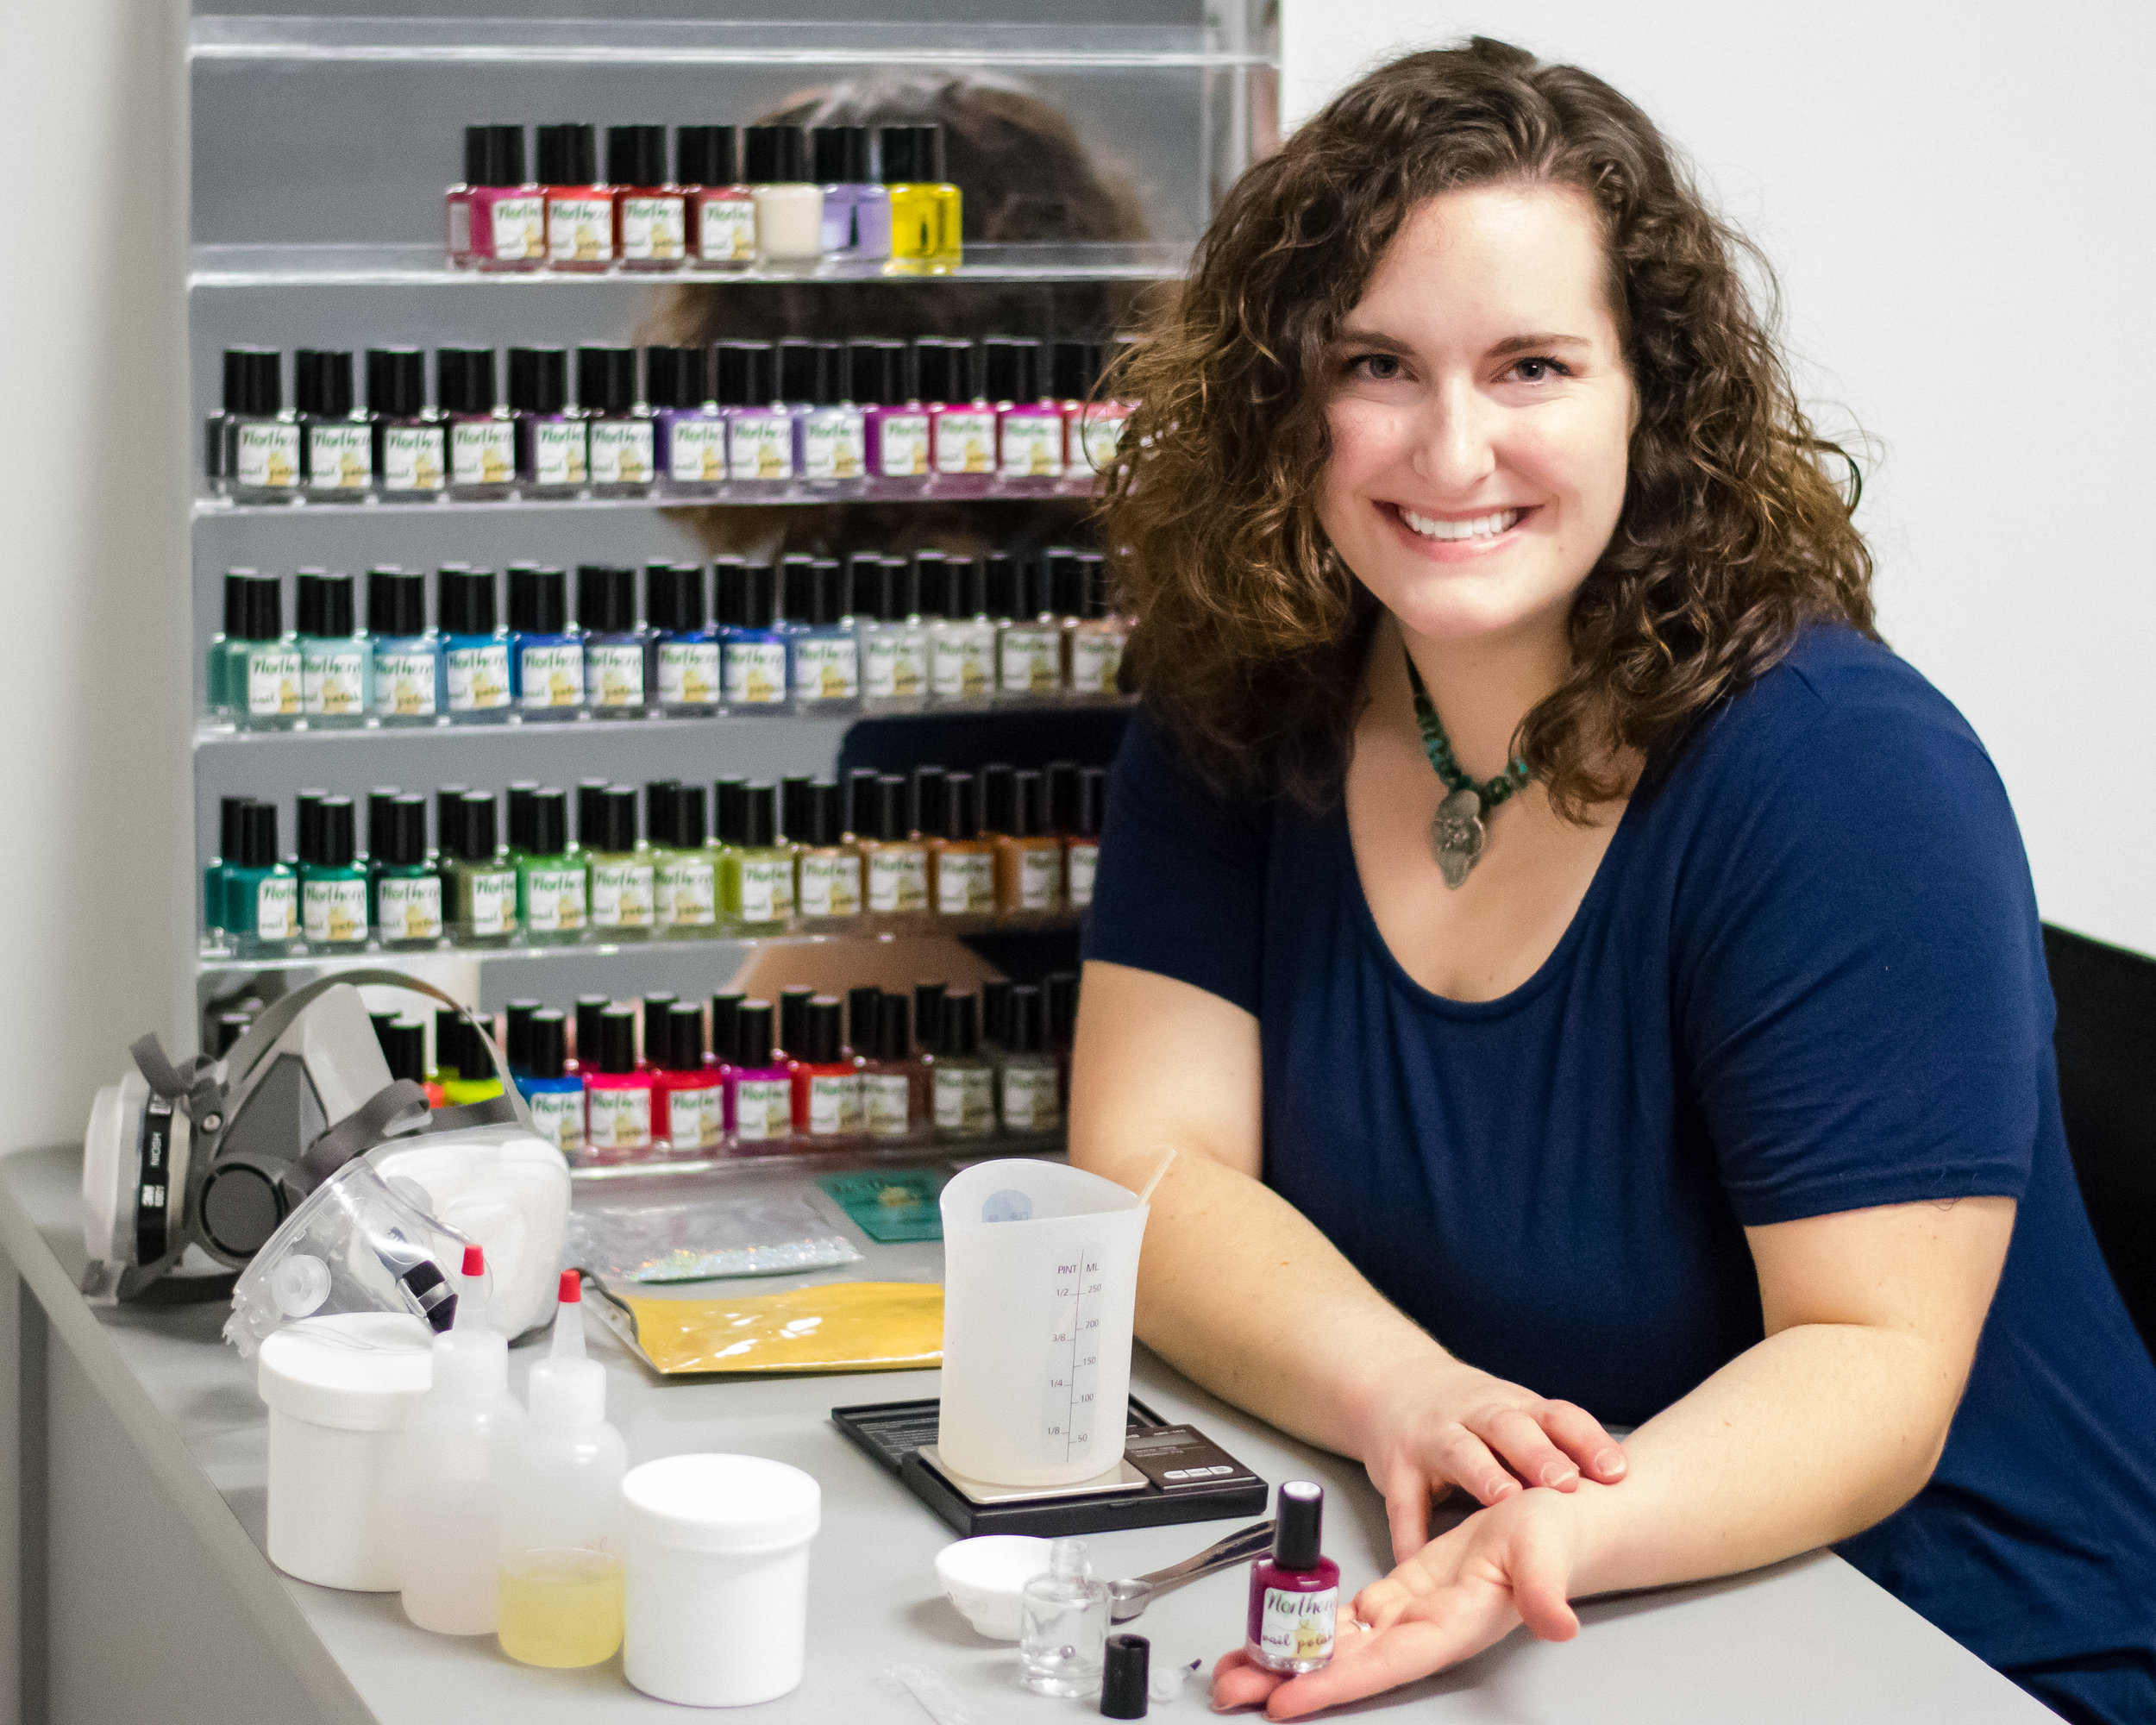 KC Springberg, founder of Northern Nail Polish in her studio creating vegan 10-toxin-free nail polish.